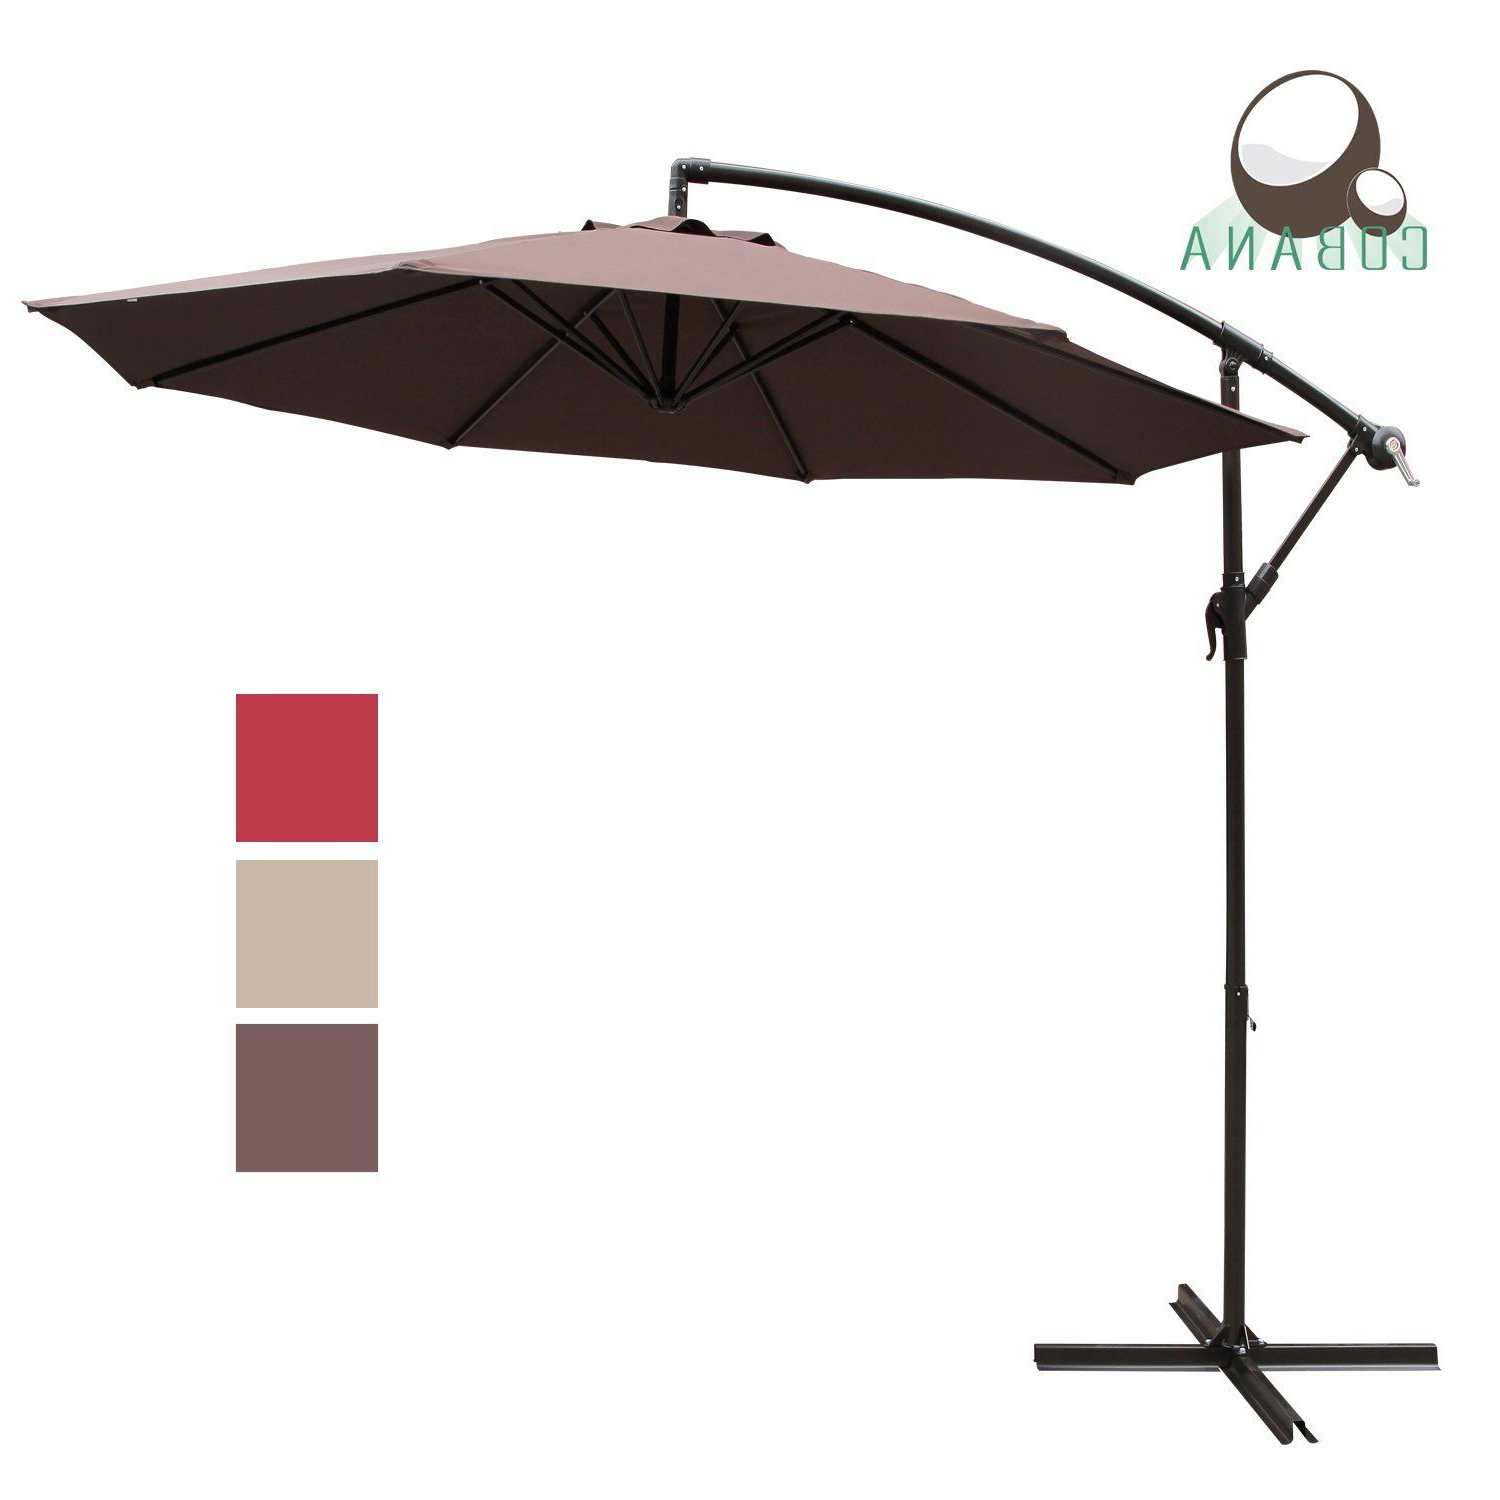 Cobana 10 Feet Cantilever Freestanding Patio Umbrella With Crank And With Regard To Well Known Jerrell Rectangular Market Umbrellas (View 18 of 20)